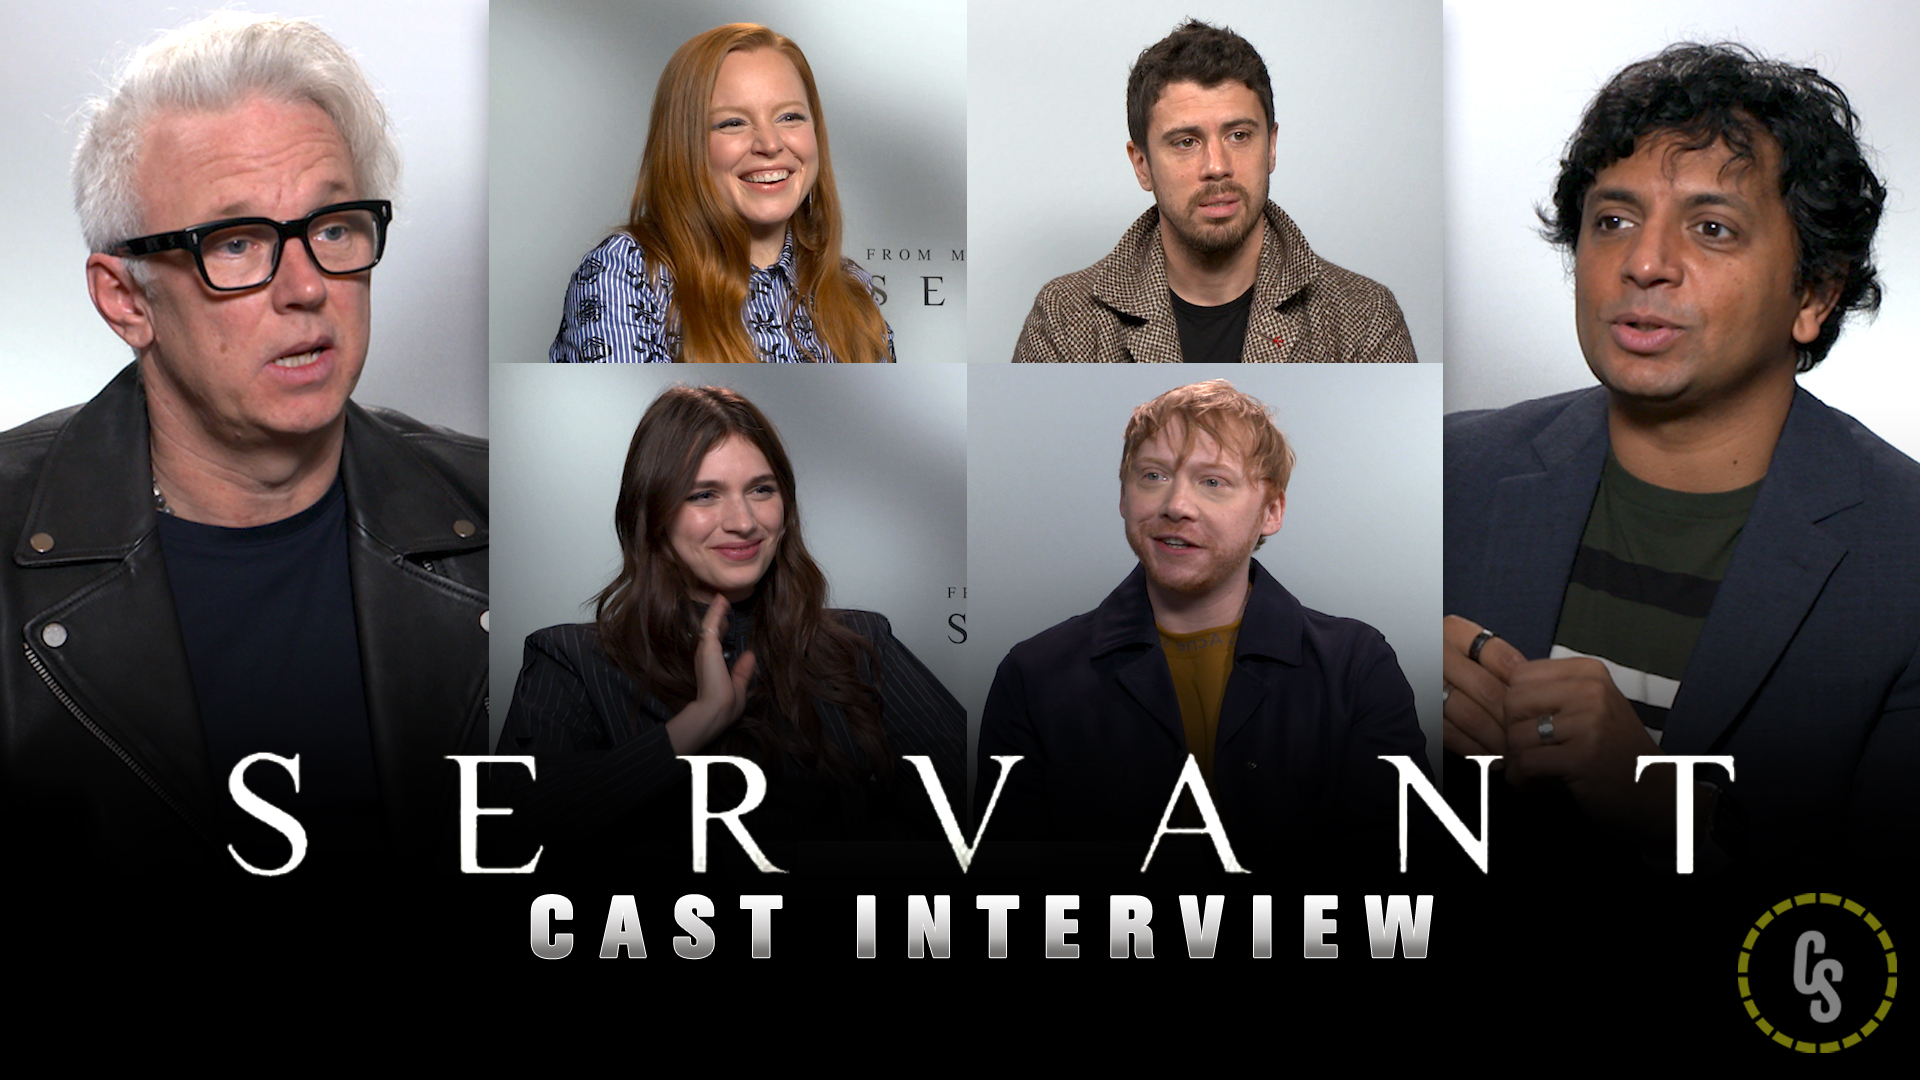 CS Video: Servant Spoilers Interview for Season 1!